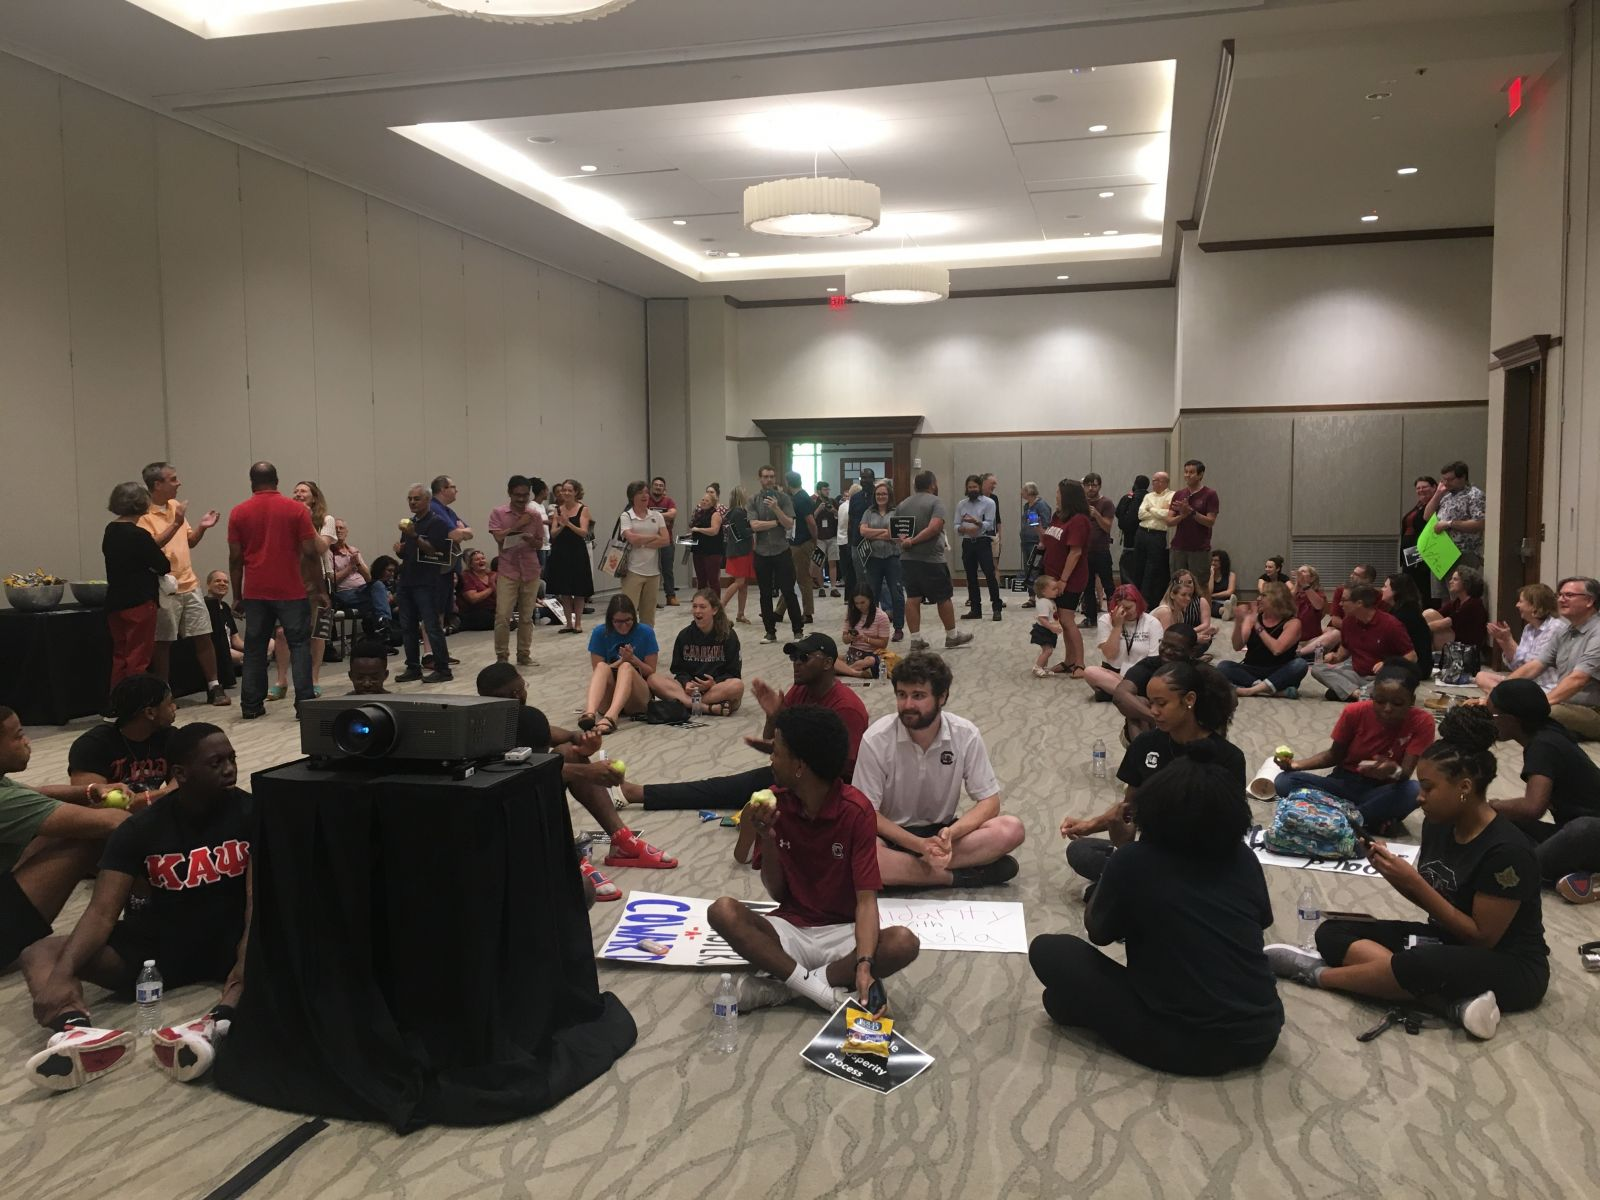 Protesters gather at the Pastides Alumni Center in advance of a contentious University of South Carolina board of trustees vote to elect Robert Caslen the school's new president. (Photo/Renee Sexton)